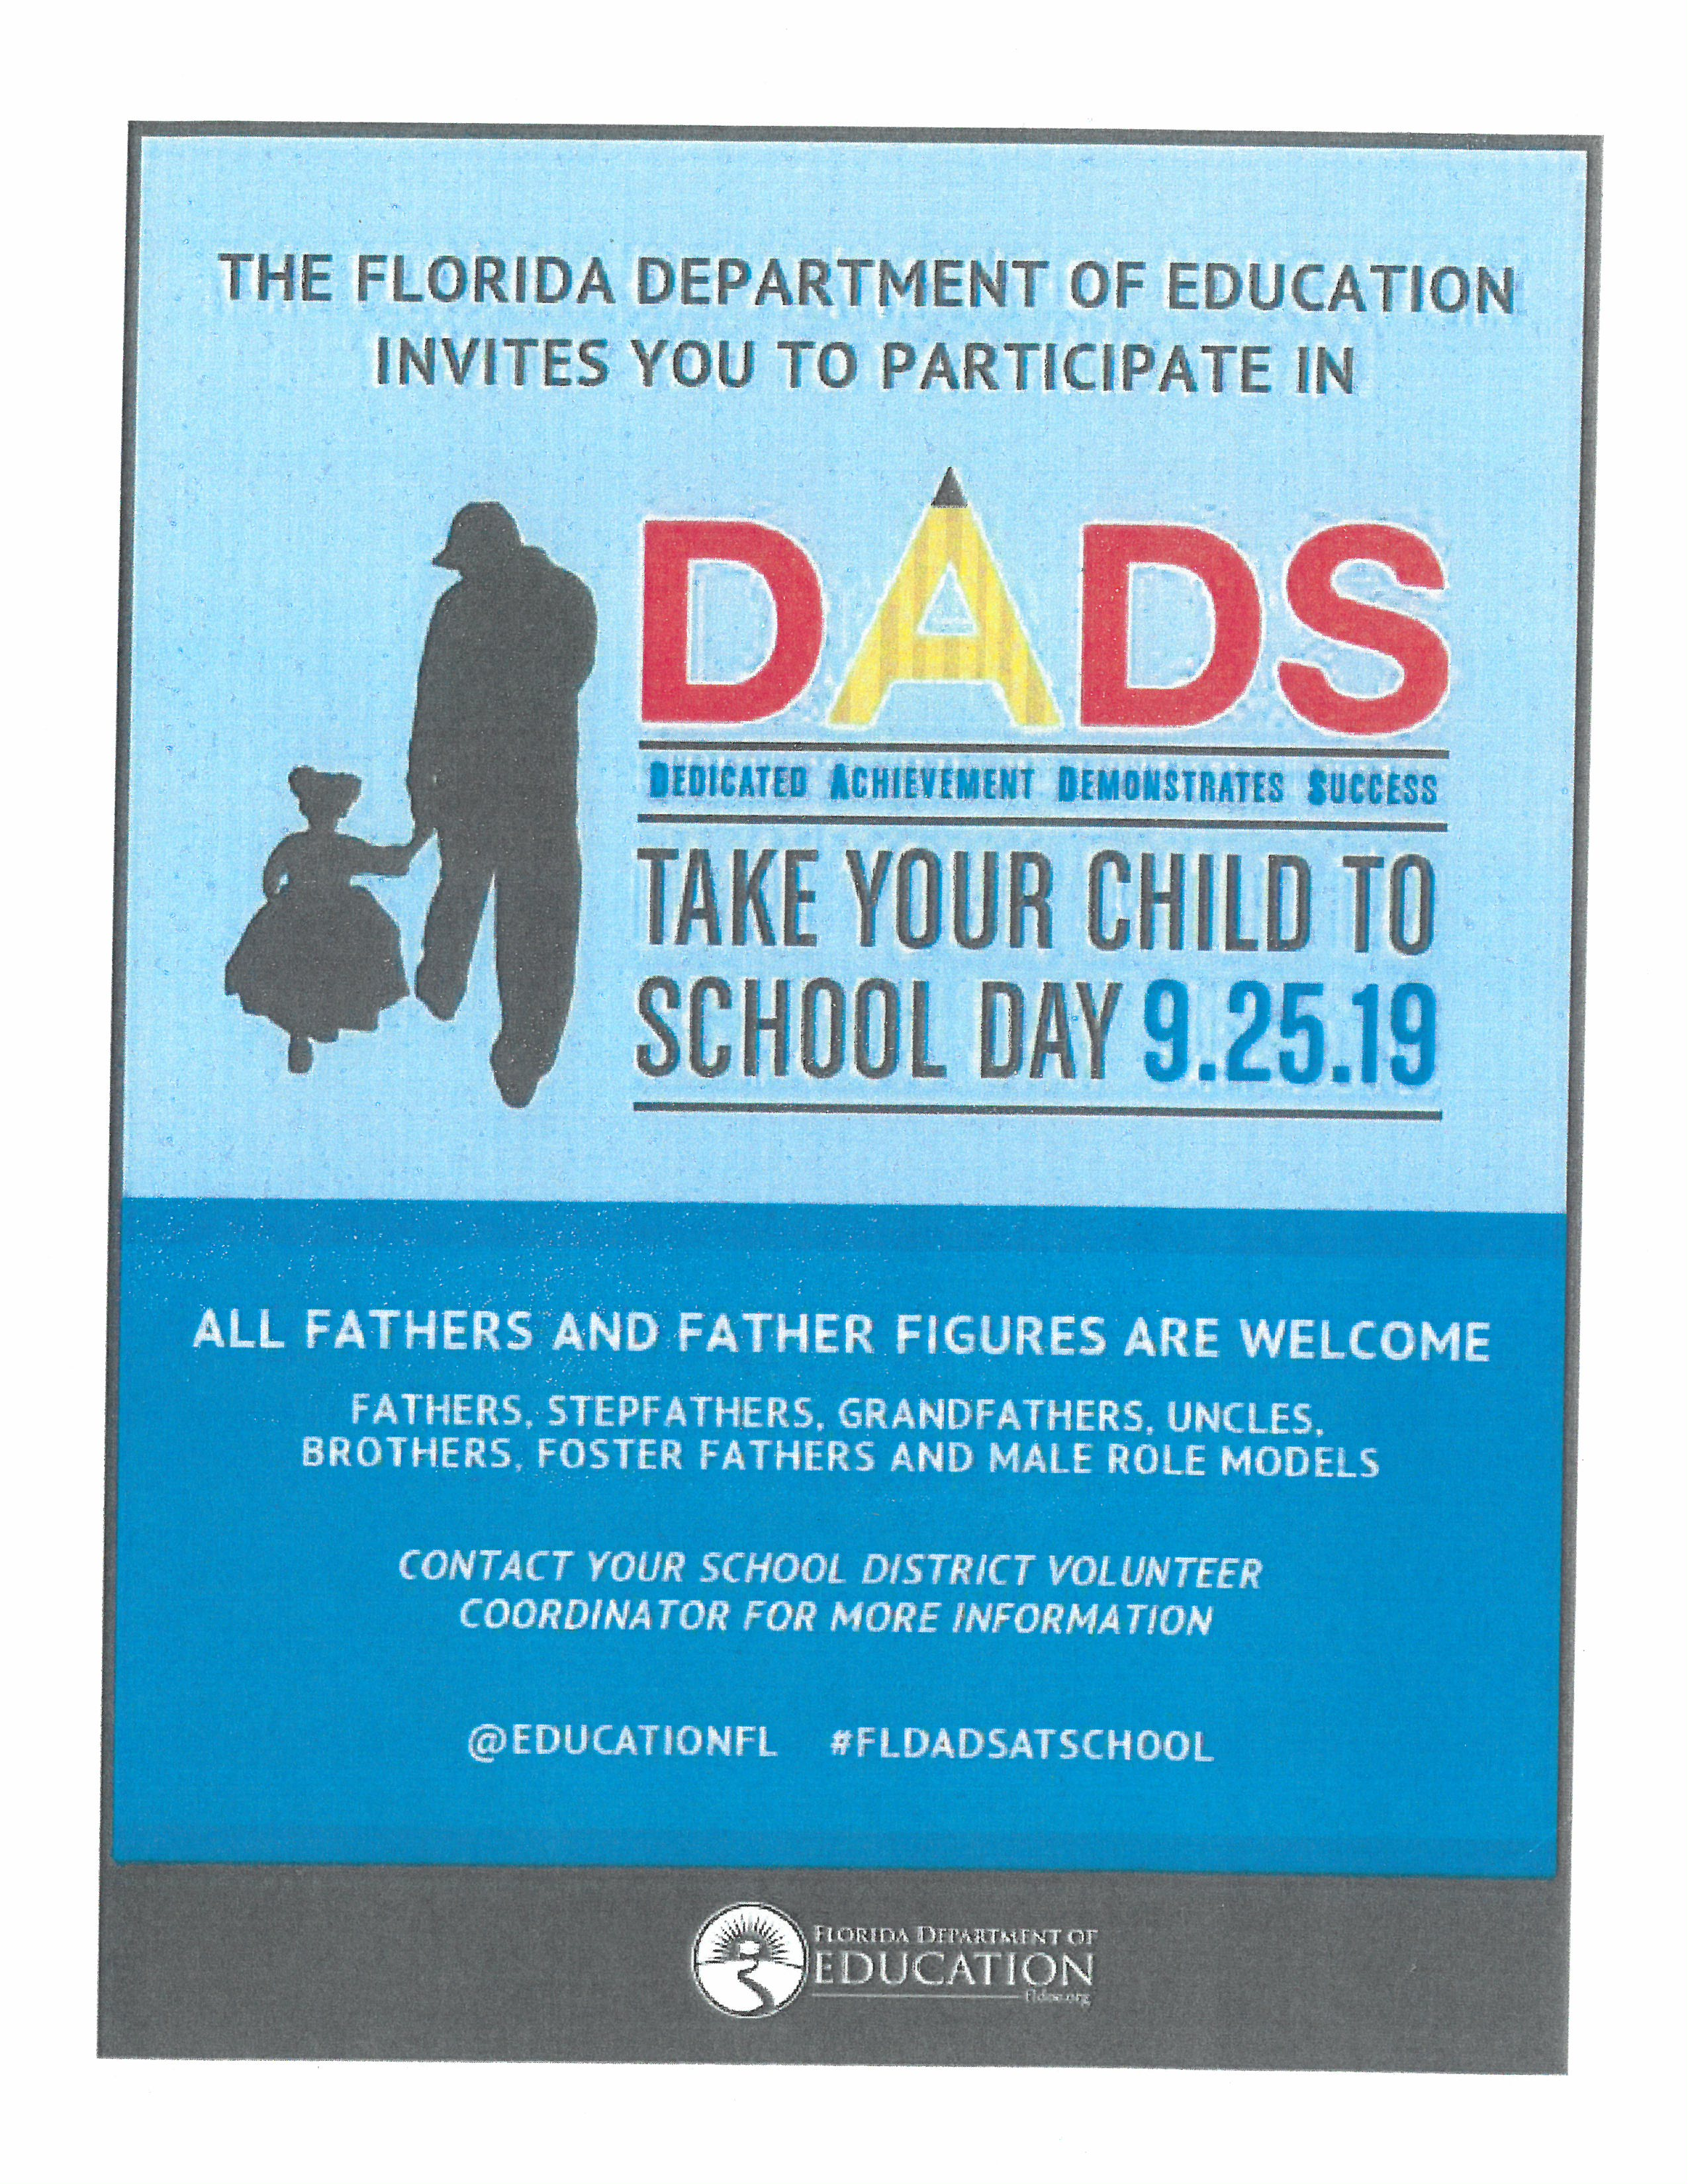 DADS TAKE YOUR CHILD TO SCHOOL